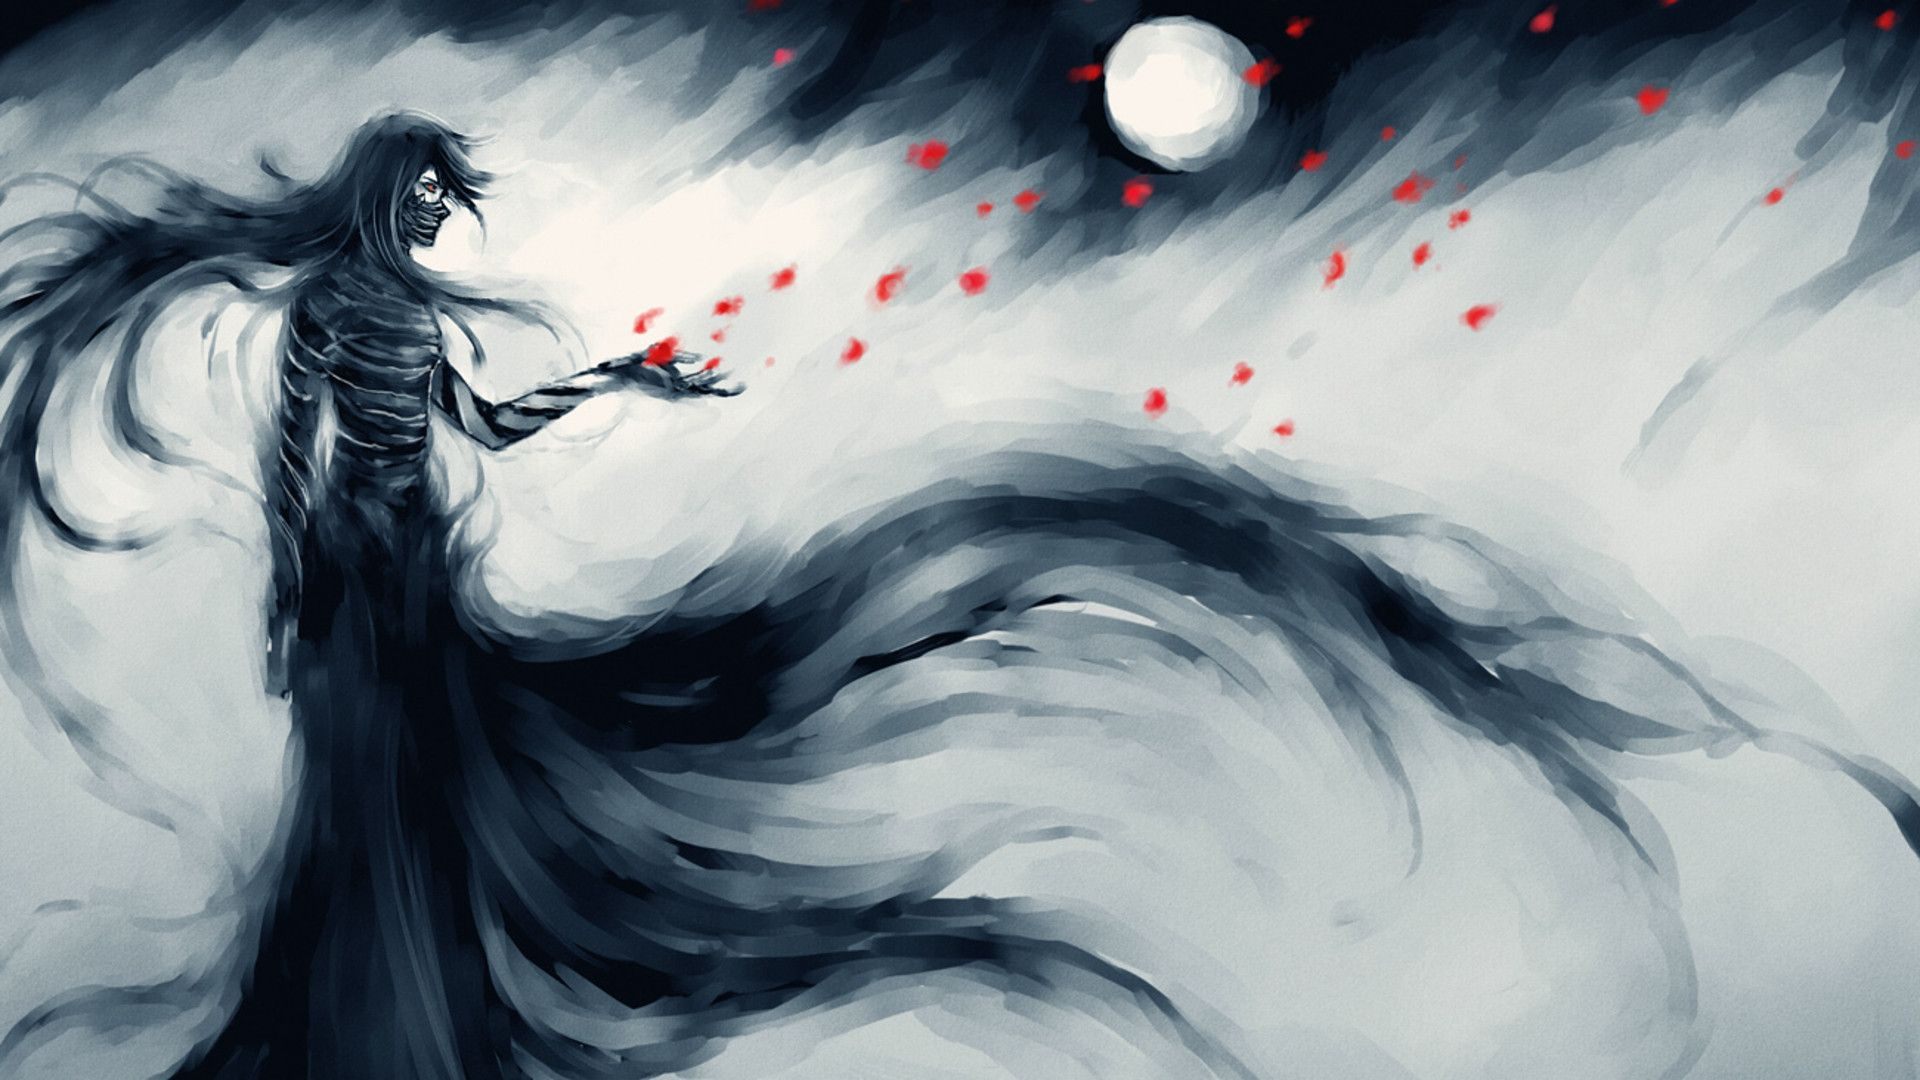 awesome-Bleach-Anime-wallpaper-wpc9002451